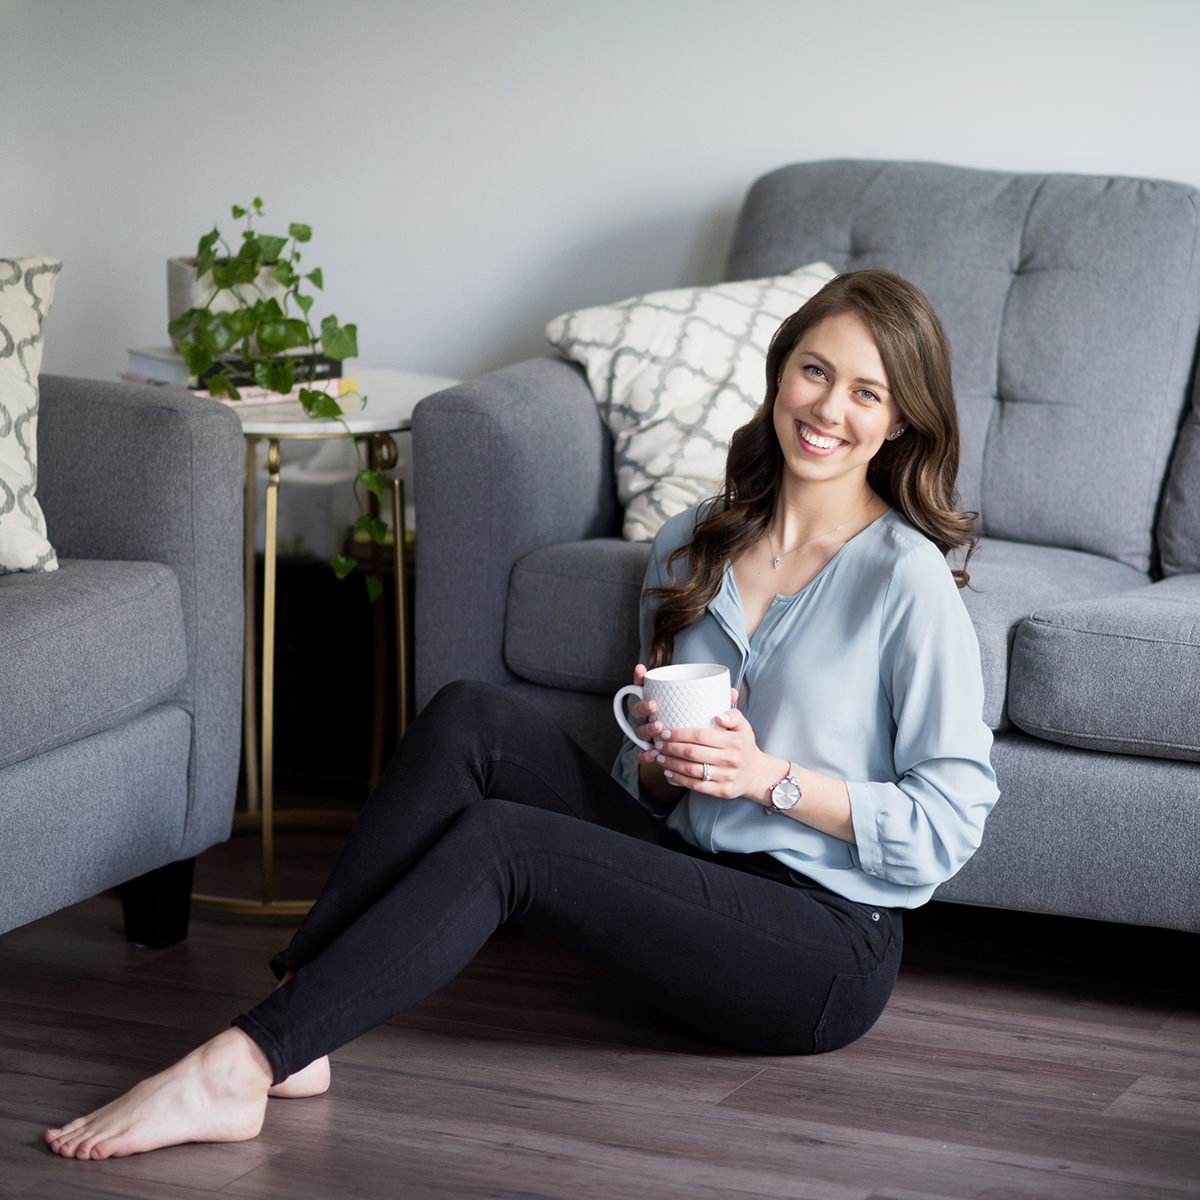 woman sitting on living room floor holding a mug